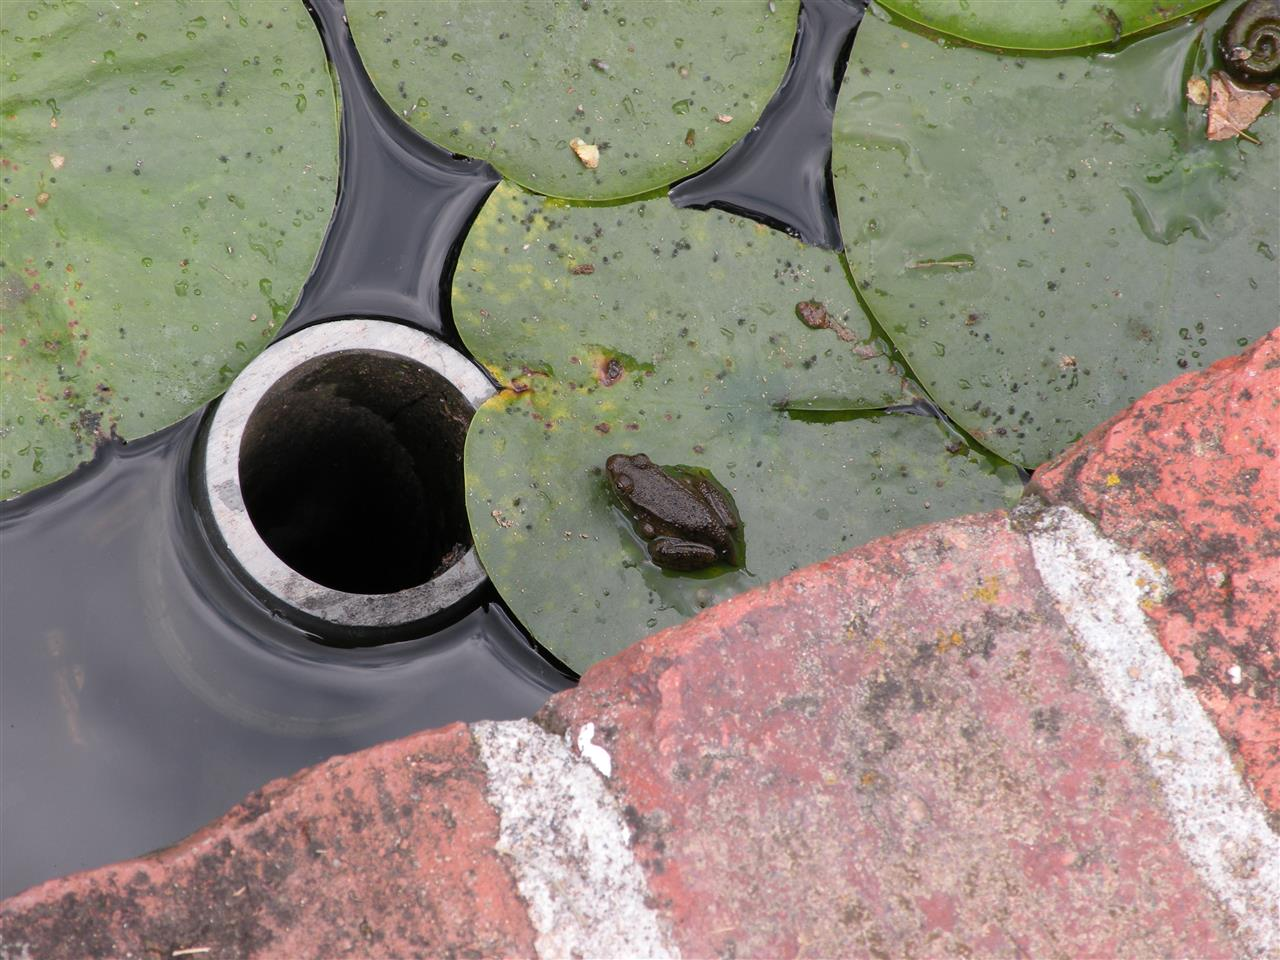 Little frog on lily pad at Ladew Topiary Garden, Monkton, MD